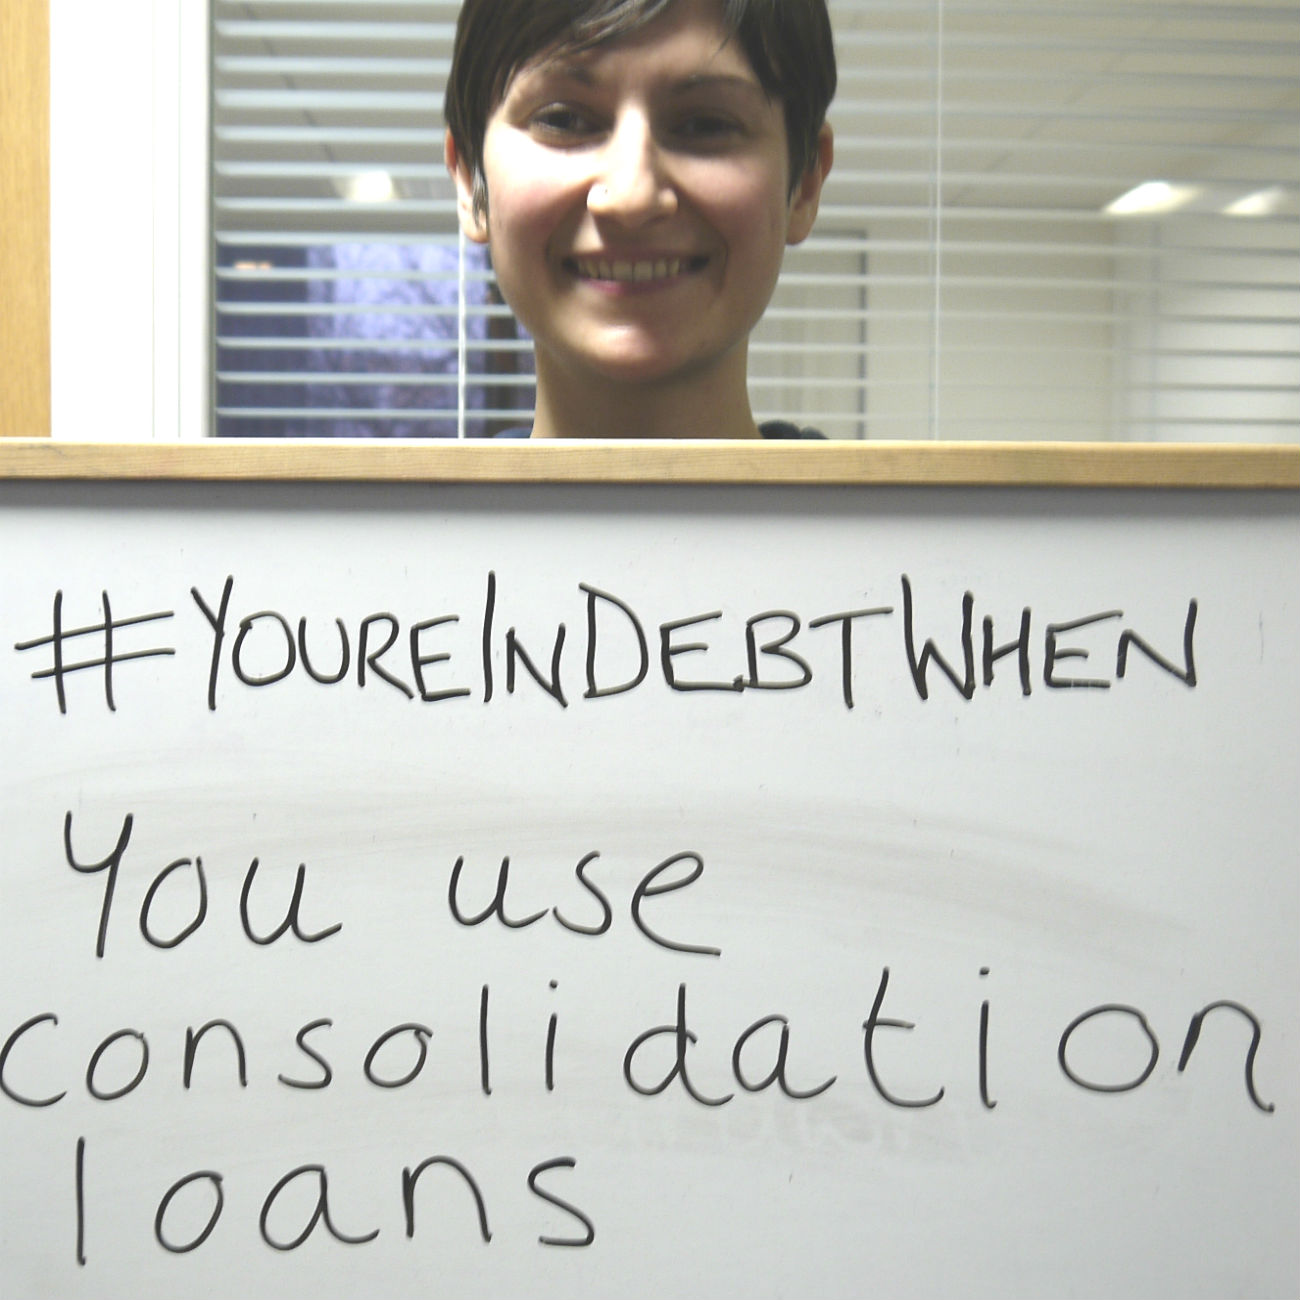 Relying on consolidation loans is a danger sign of debt